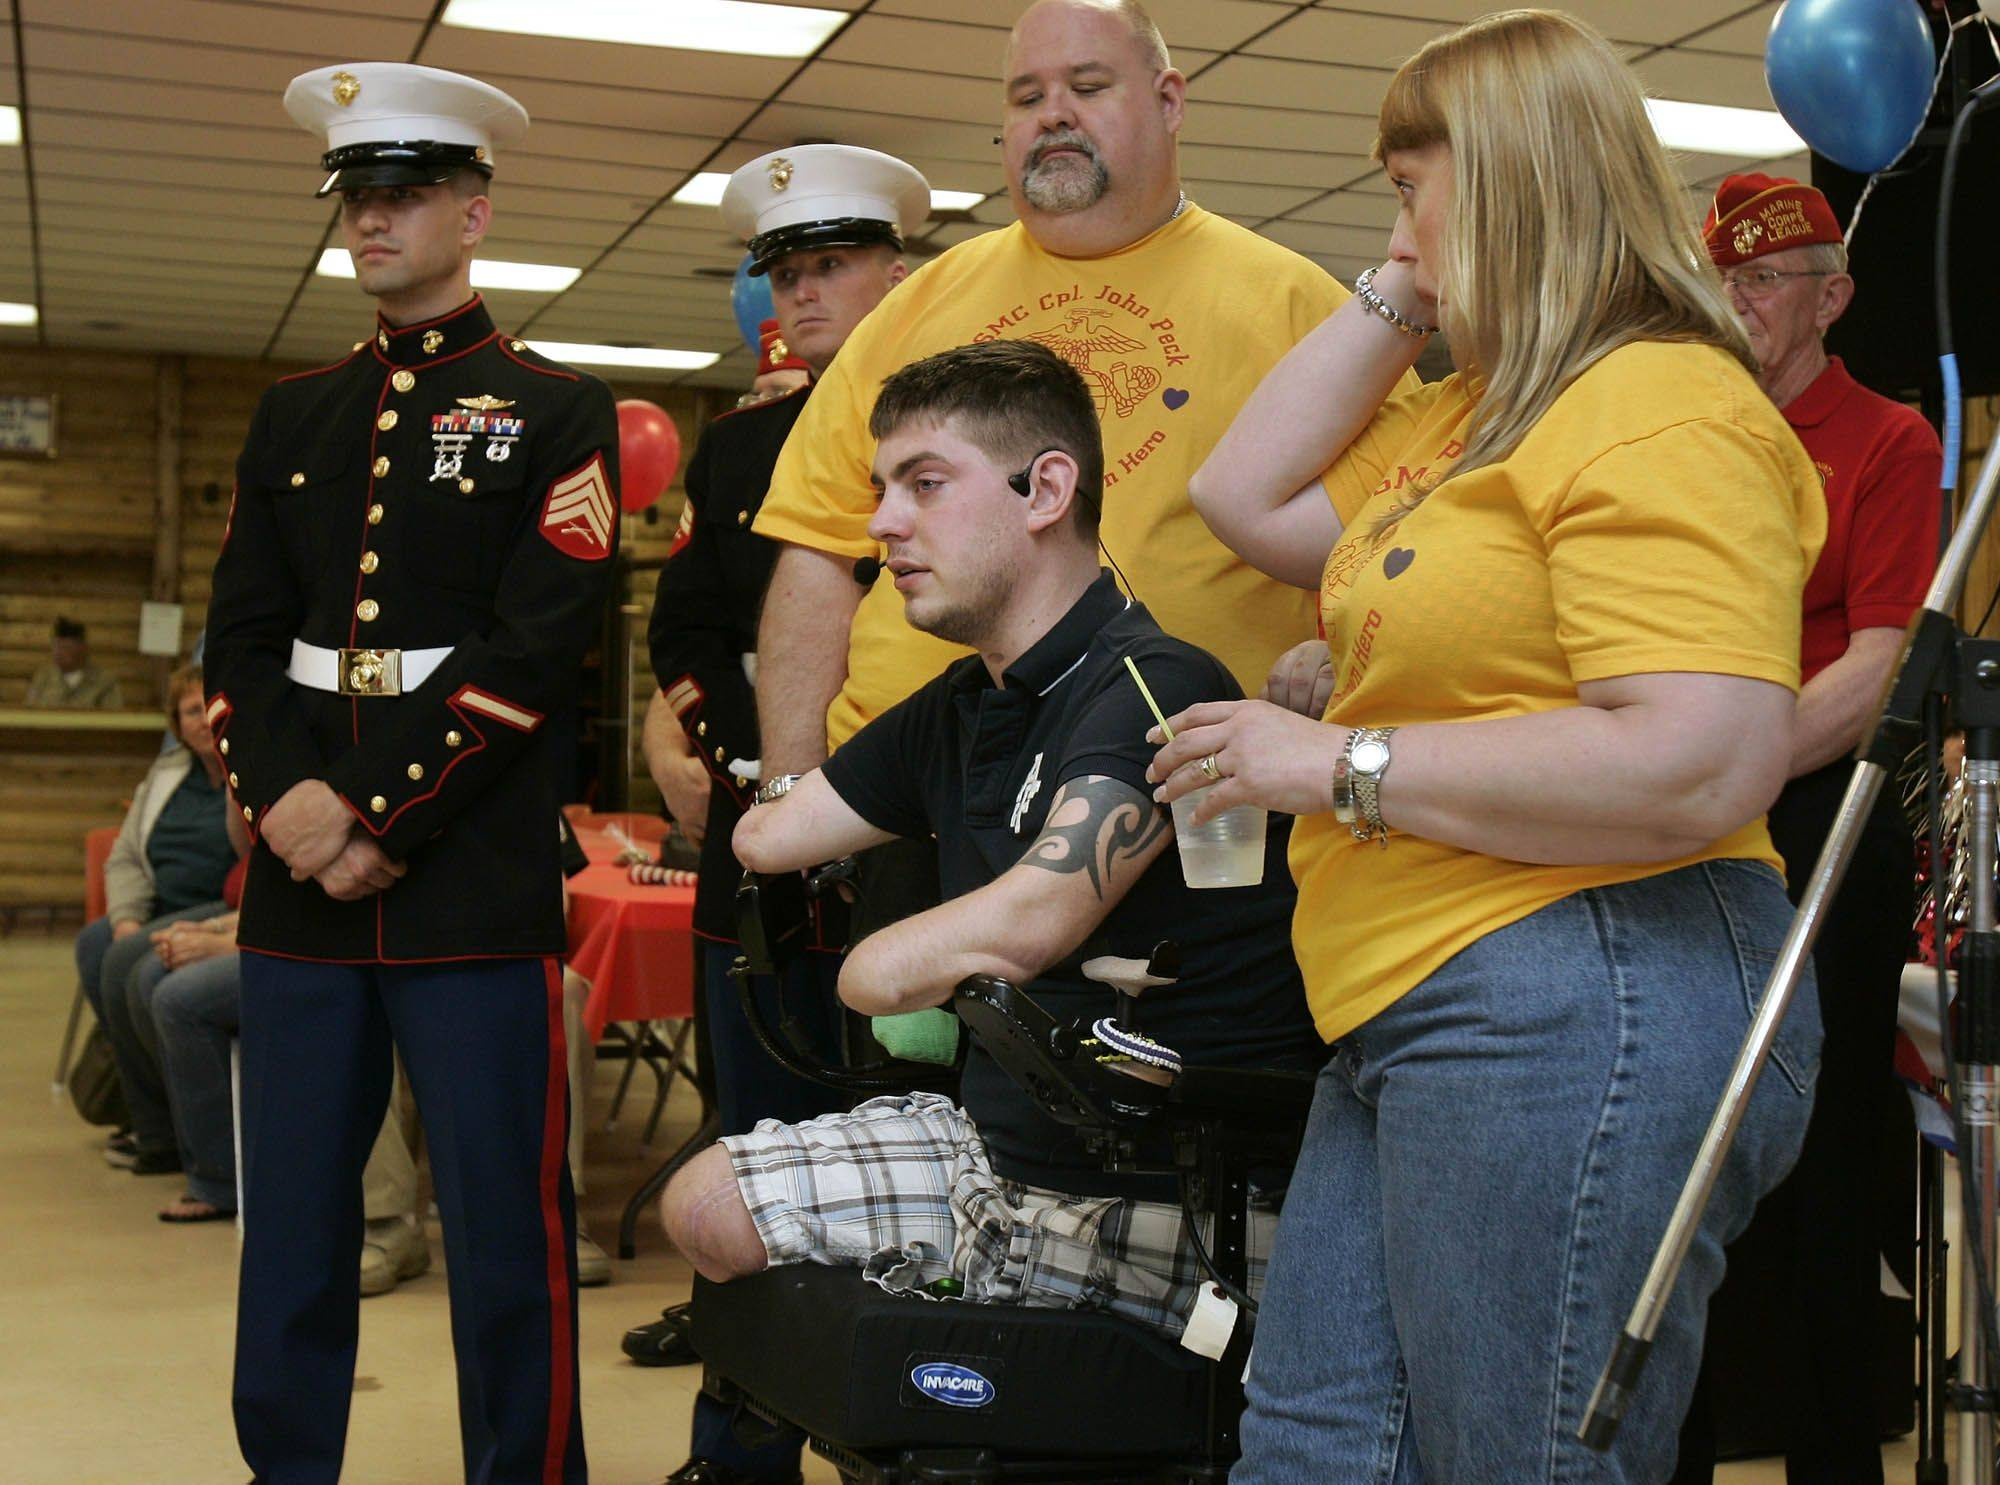 U.S. Marine Cpl. John Peck talks about dead buddies and thanks his supporters Monday at the VFW hall in Antioch.